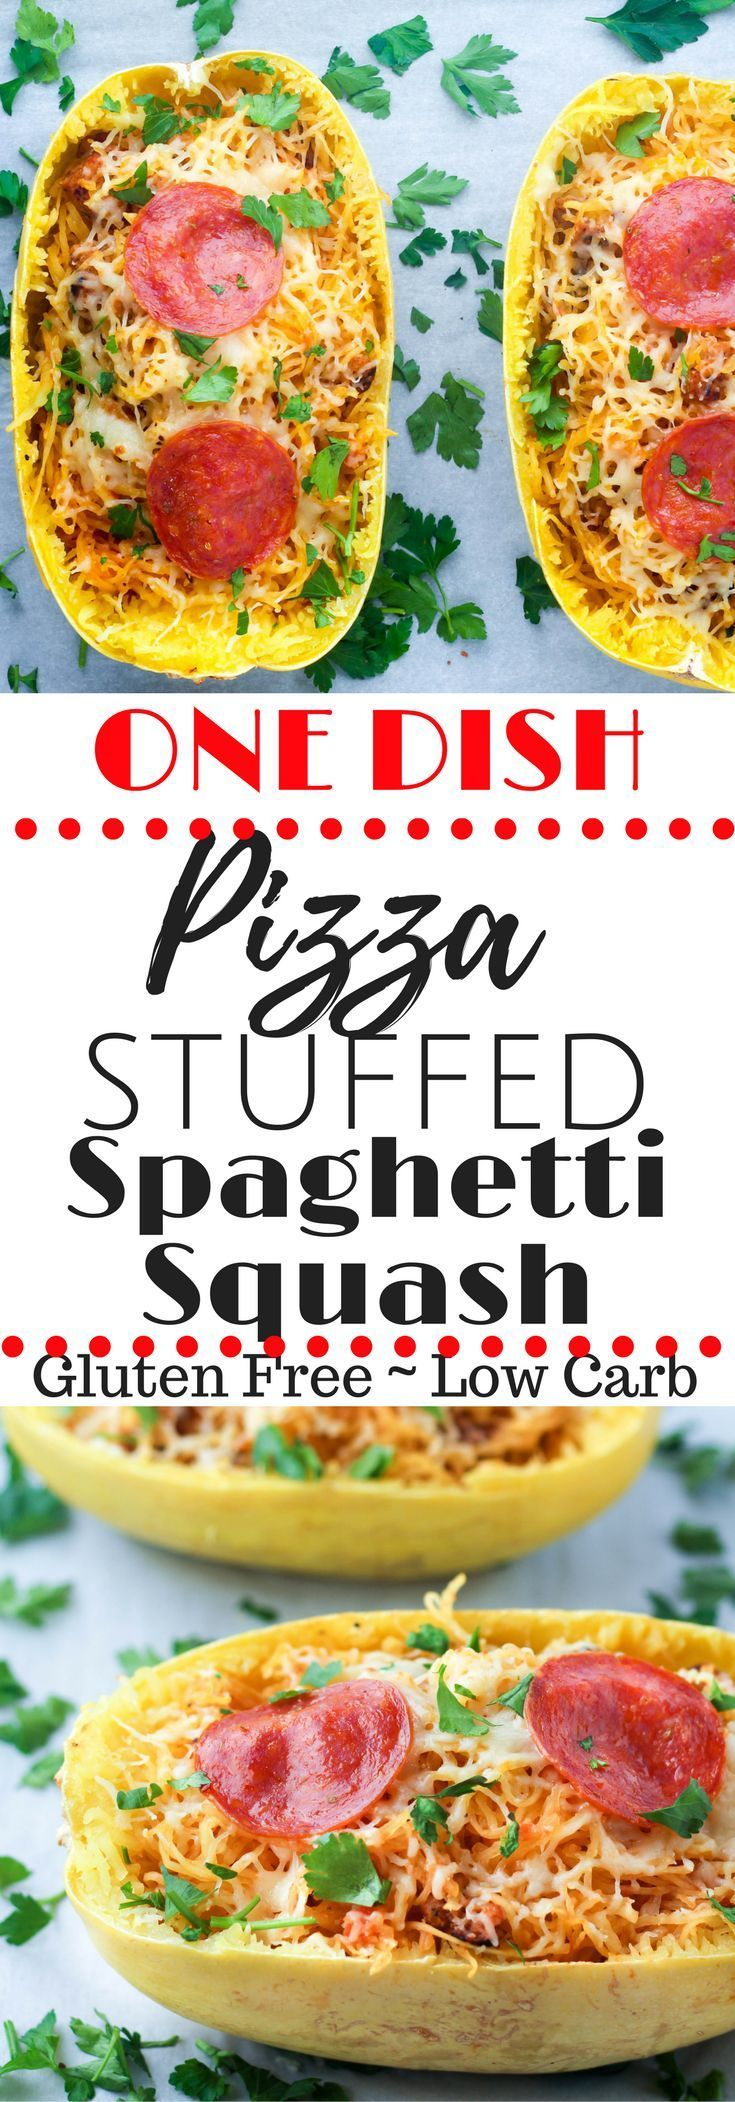 Craving pizza?  This pizza stuffed spaghetti squash is full of all the pizza flavor & made in ONE PAN!  Gluten Free, Low Carb, & High Pro via @hungryhobby